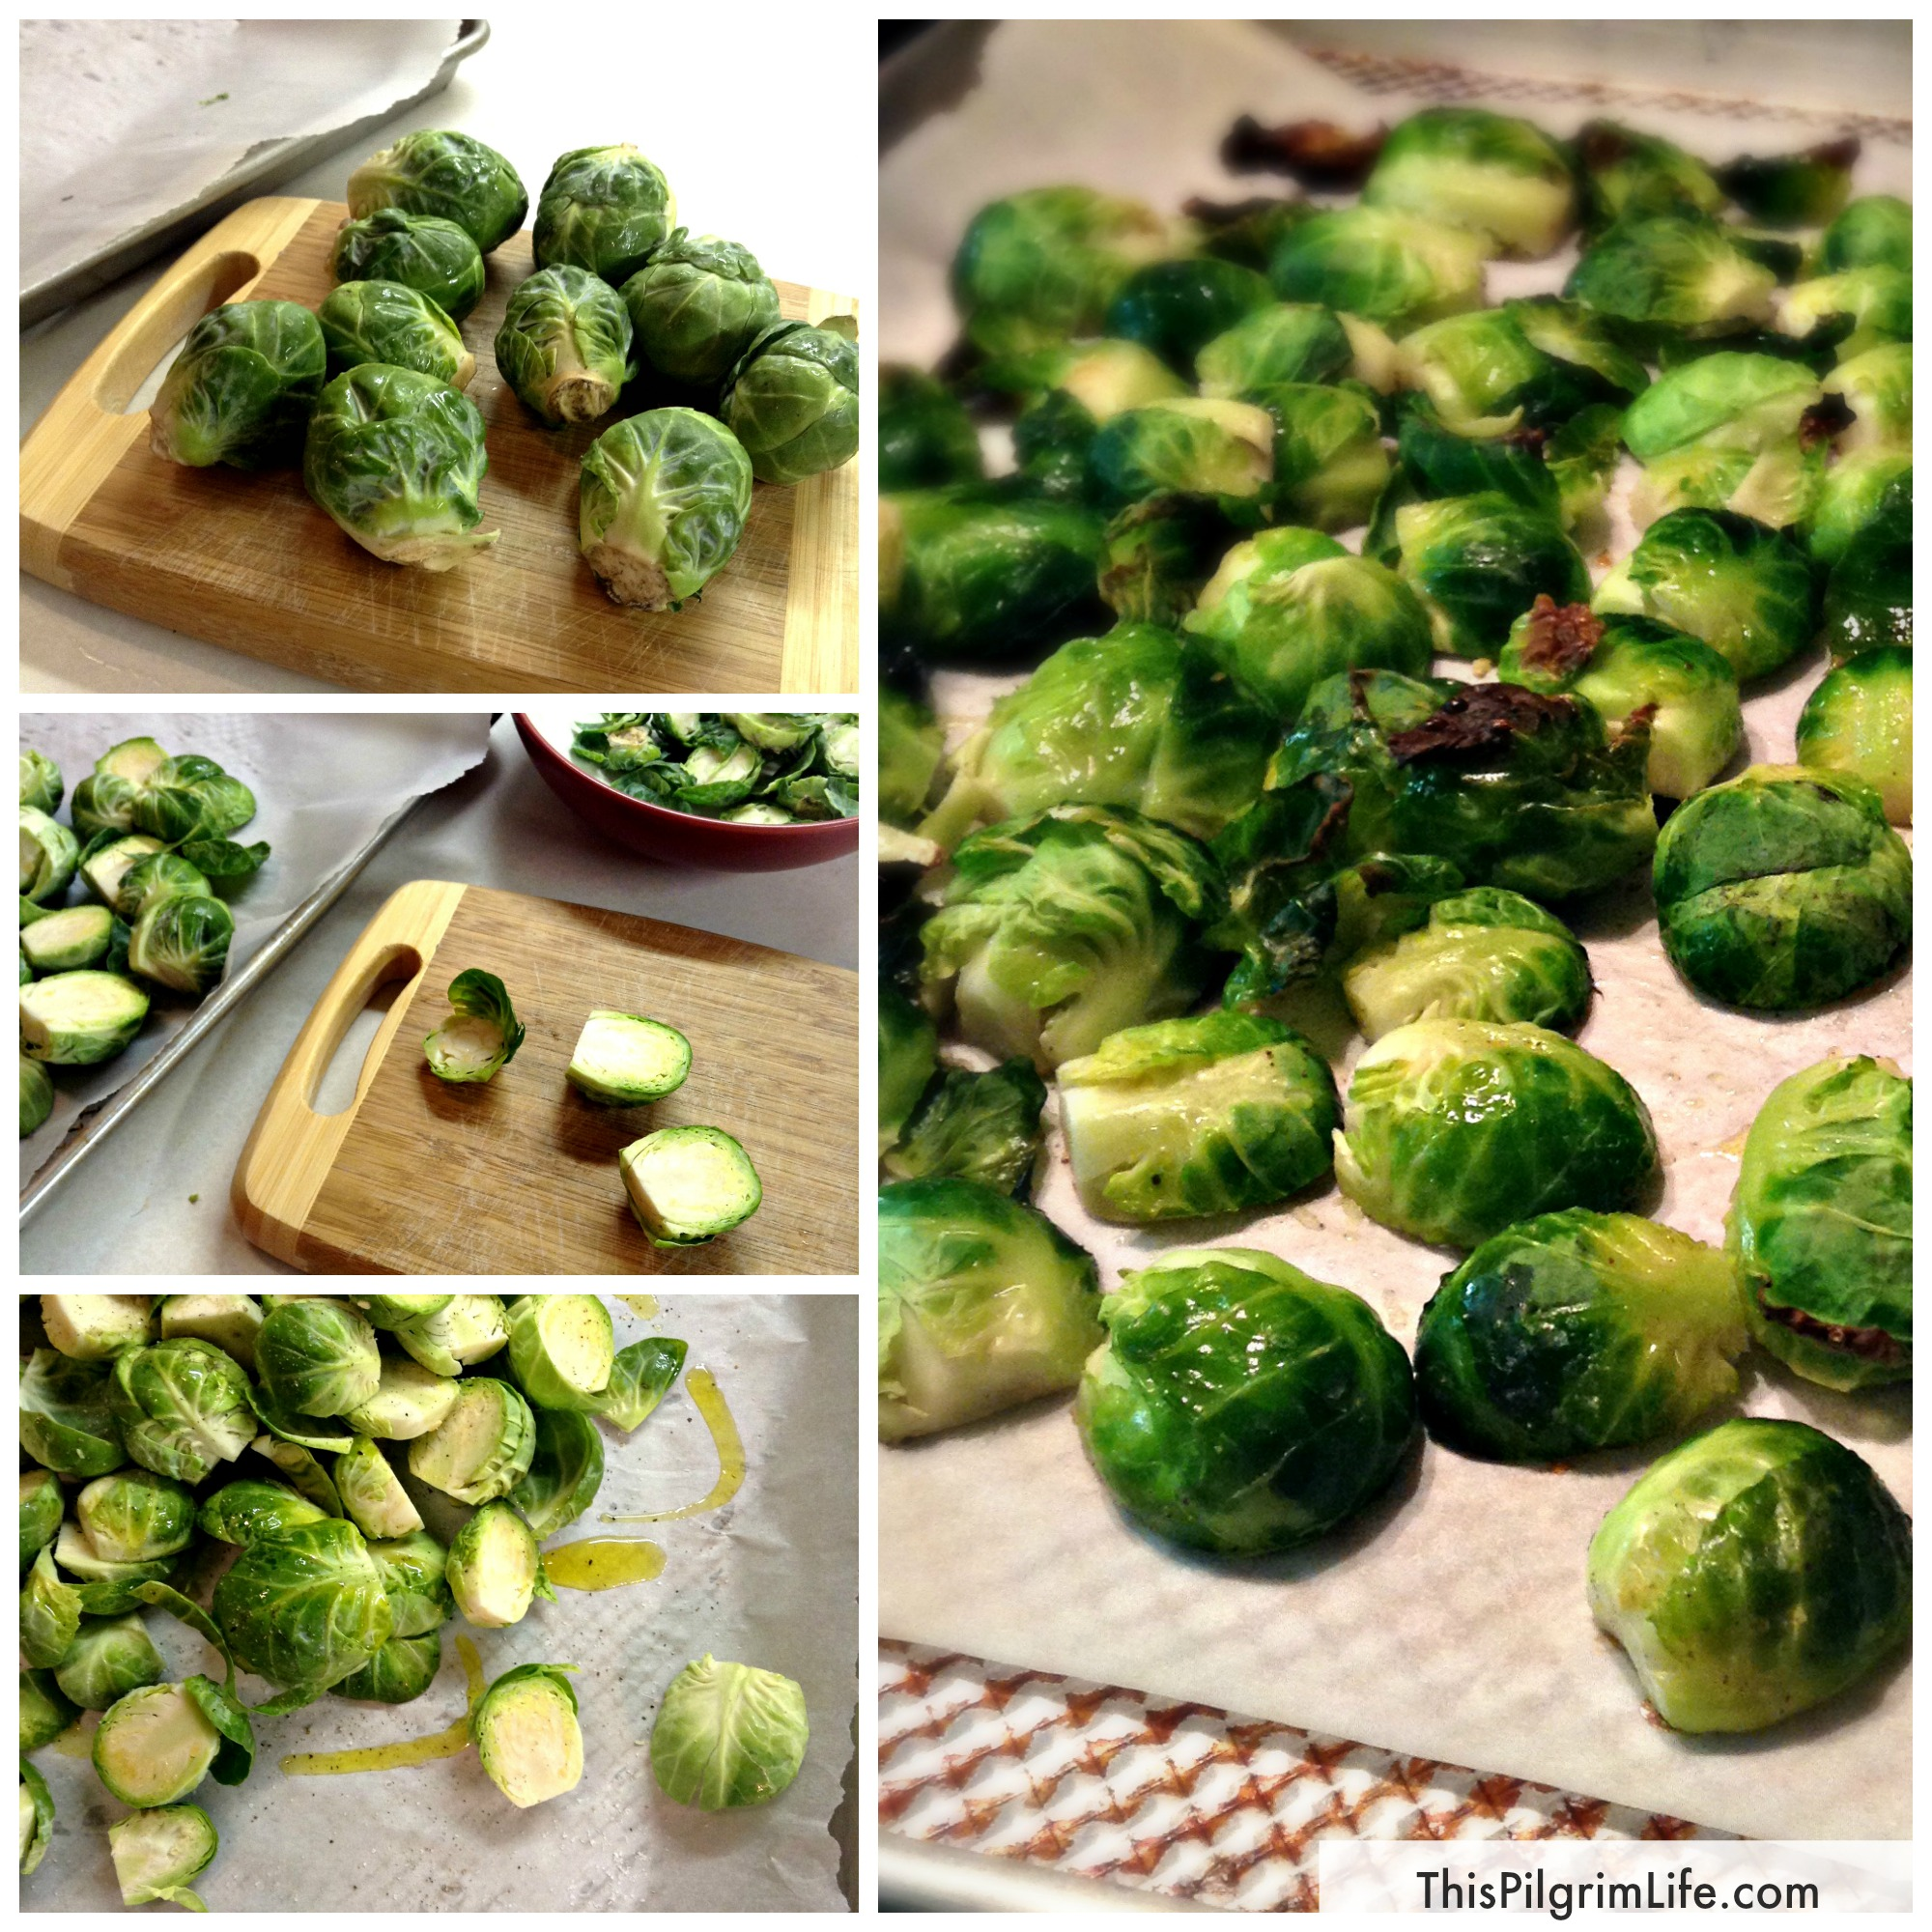 Simple Roasted Brussels Sprouts- an easy and delicious way to prepare Brussels sprouts in twenty minutes or less, perfect for weeknight meals!